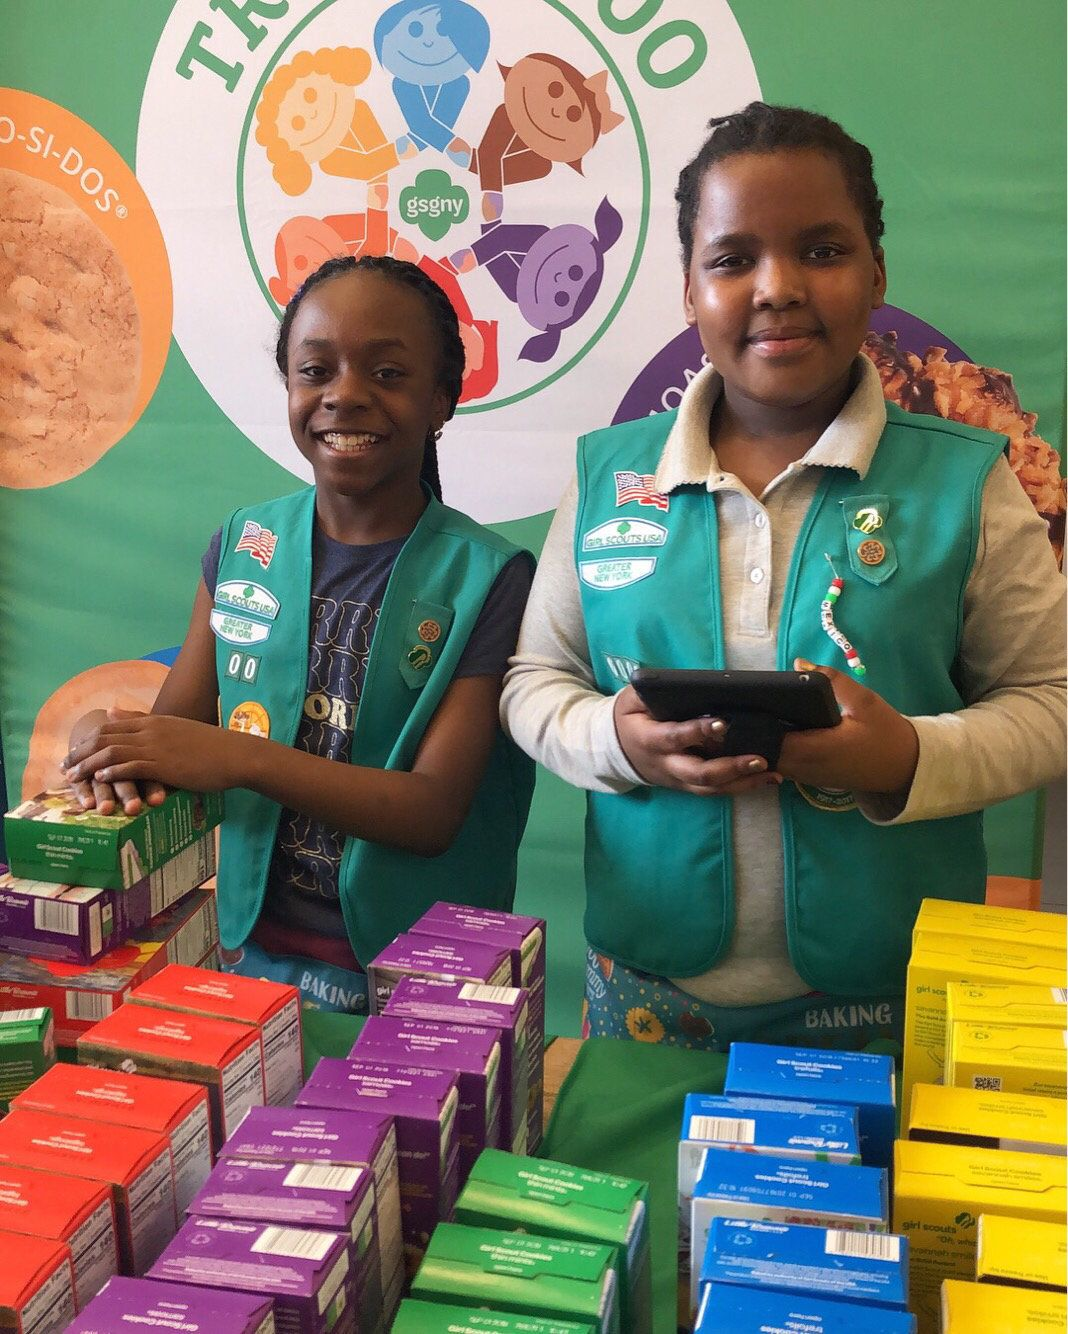 Members of Girl Scout Troop 6000 are set for the Union Square cookie sale